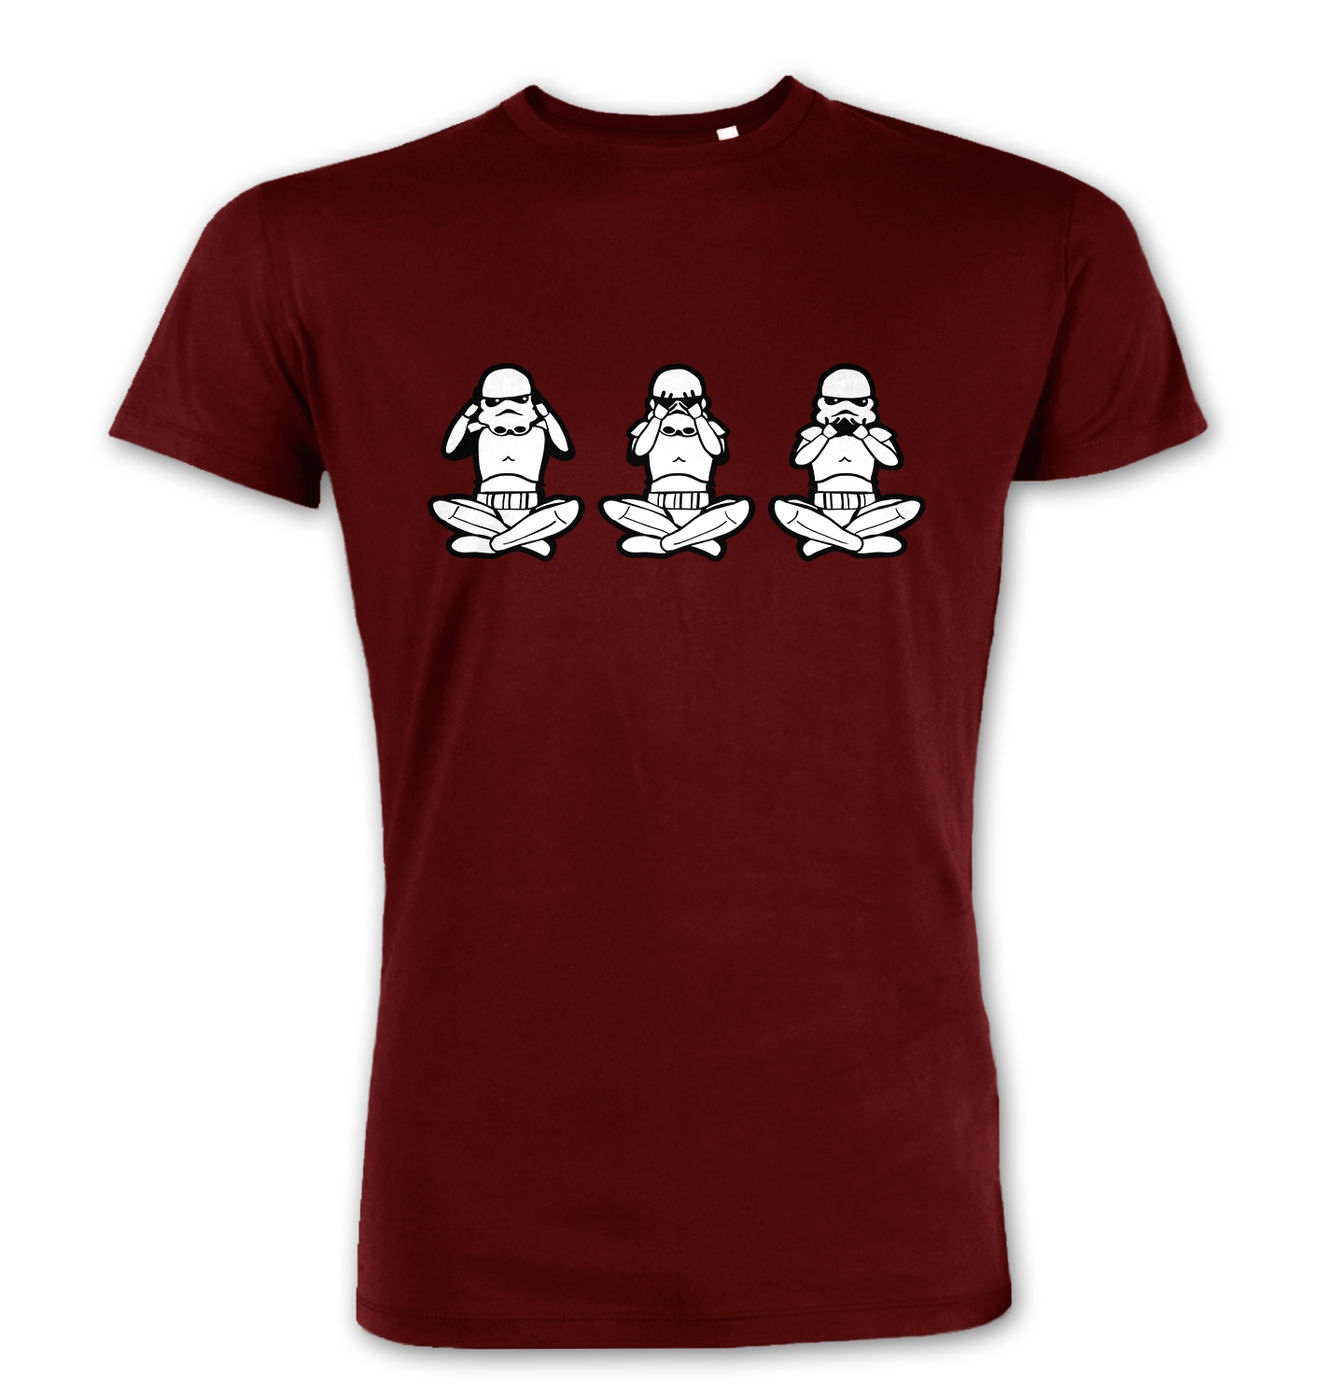 Three Wise Stormtroopers premium t-shirt by Something Geeky